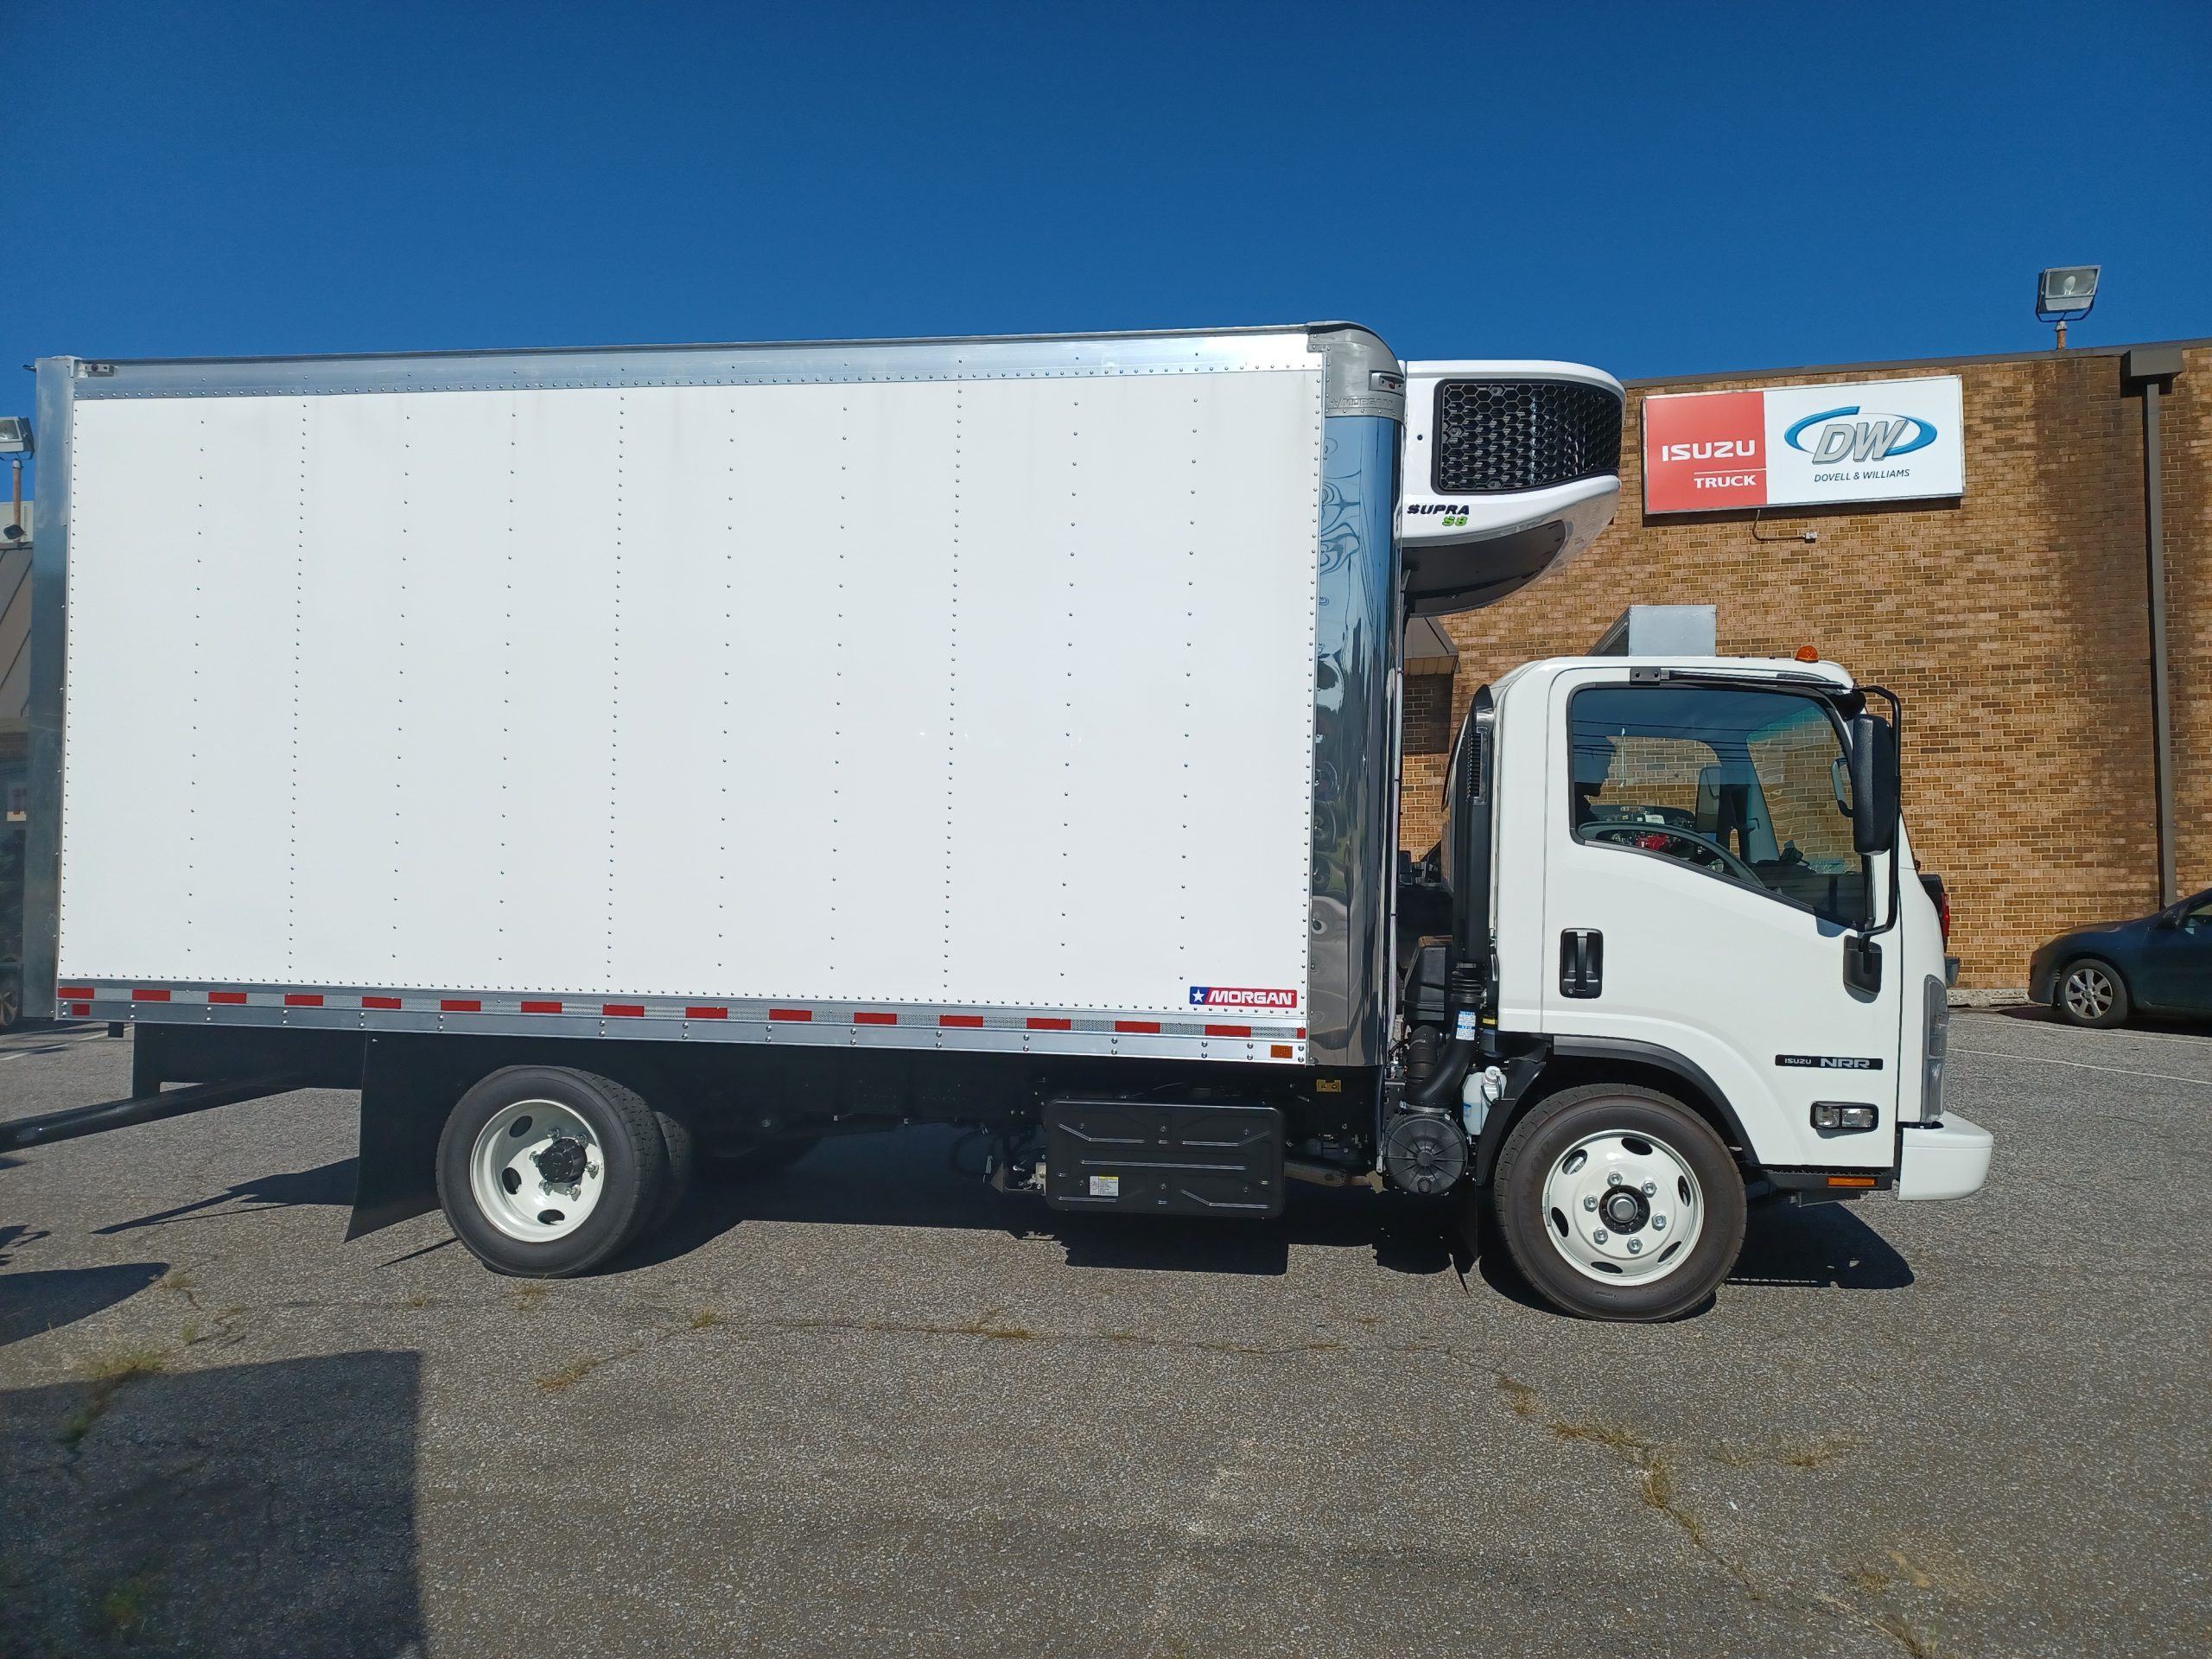 2022 NRR Refrigerated Truck Diesel 3 year Unlimited Mile Warranty 20210903_094414-scaled